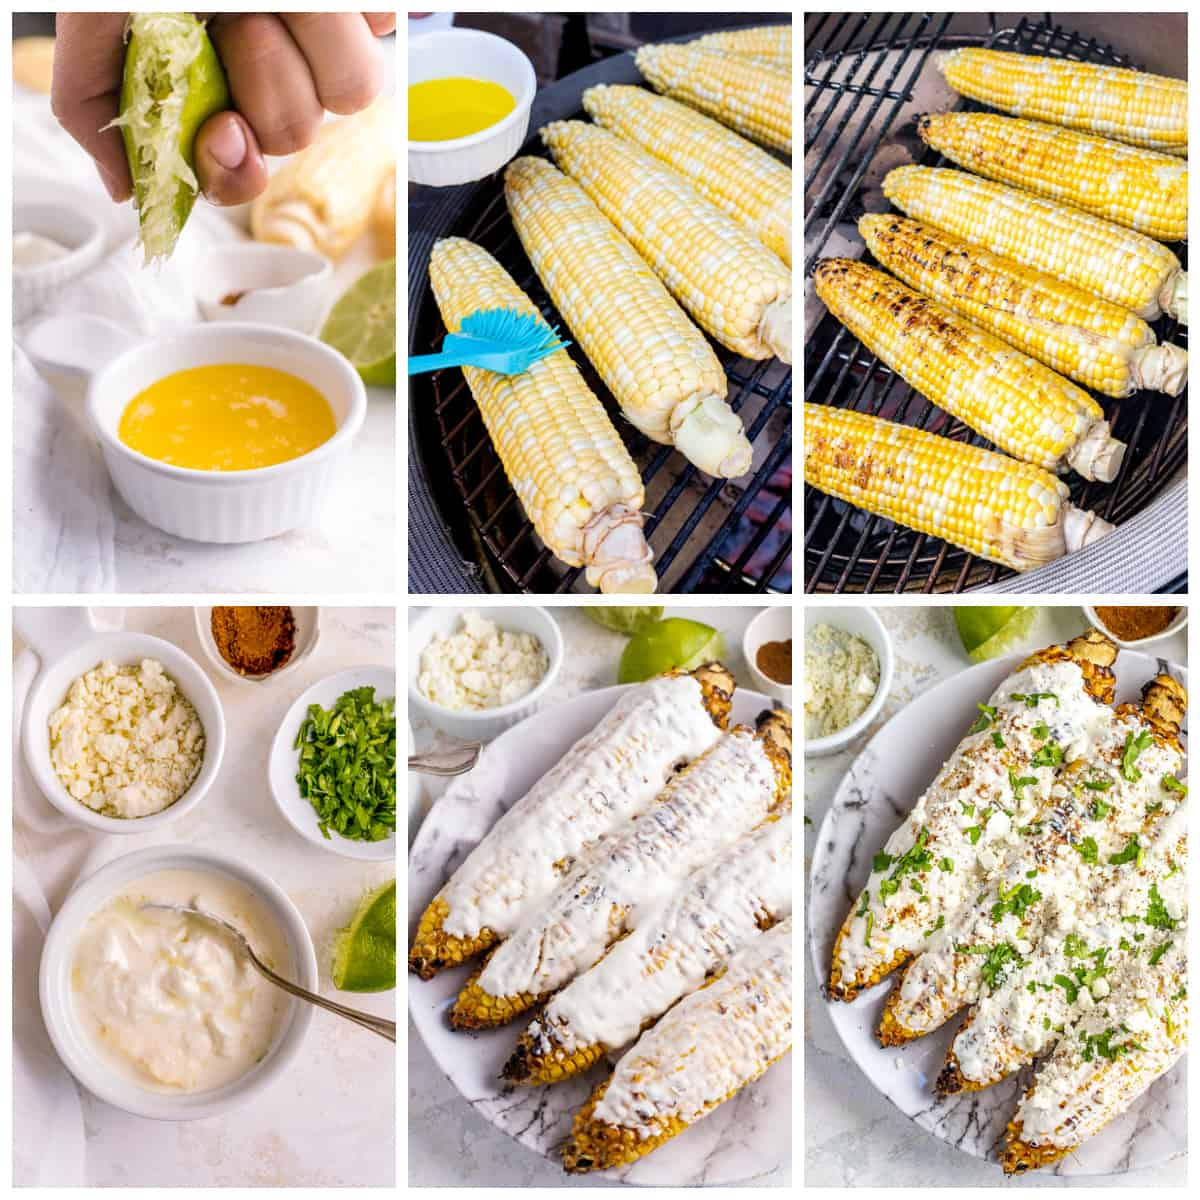 Step by step photos no how to make Mexican Street Corn